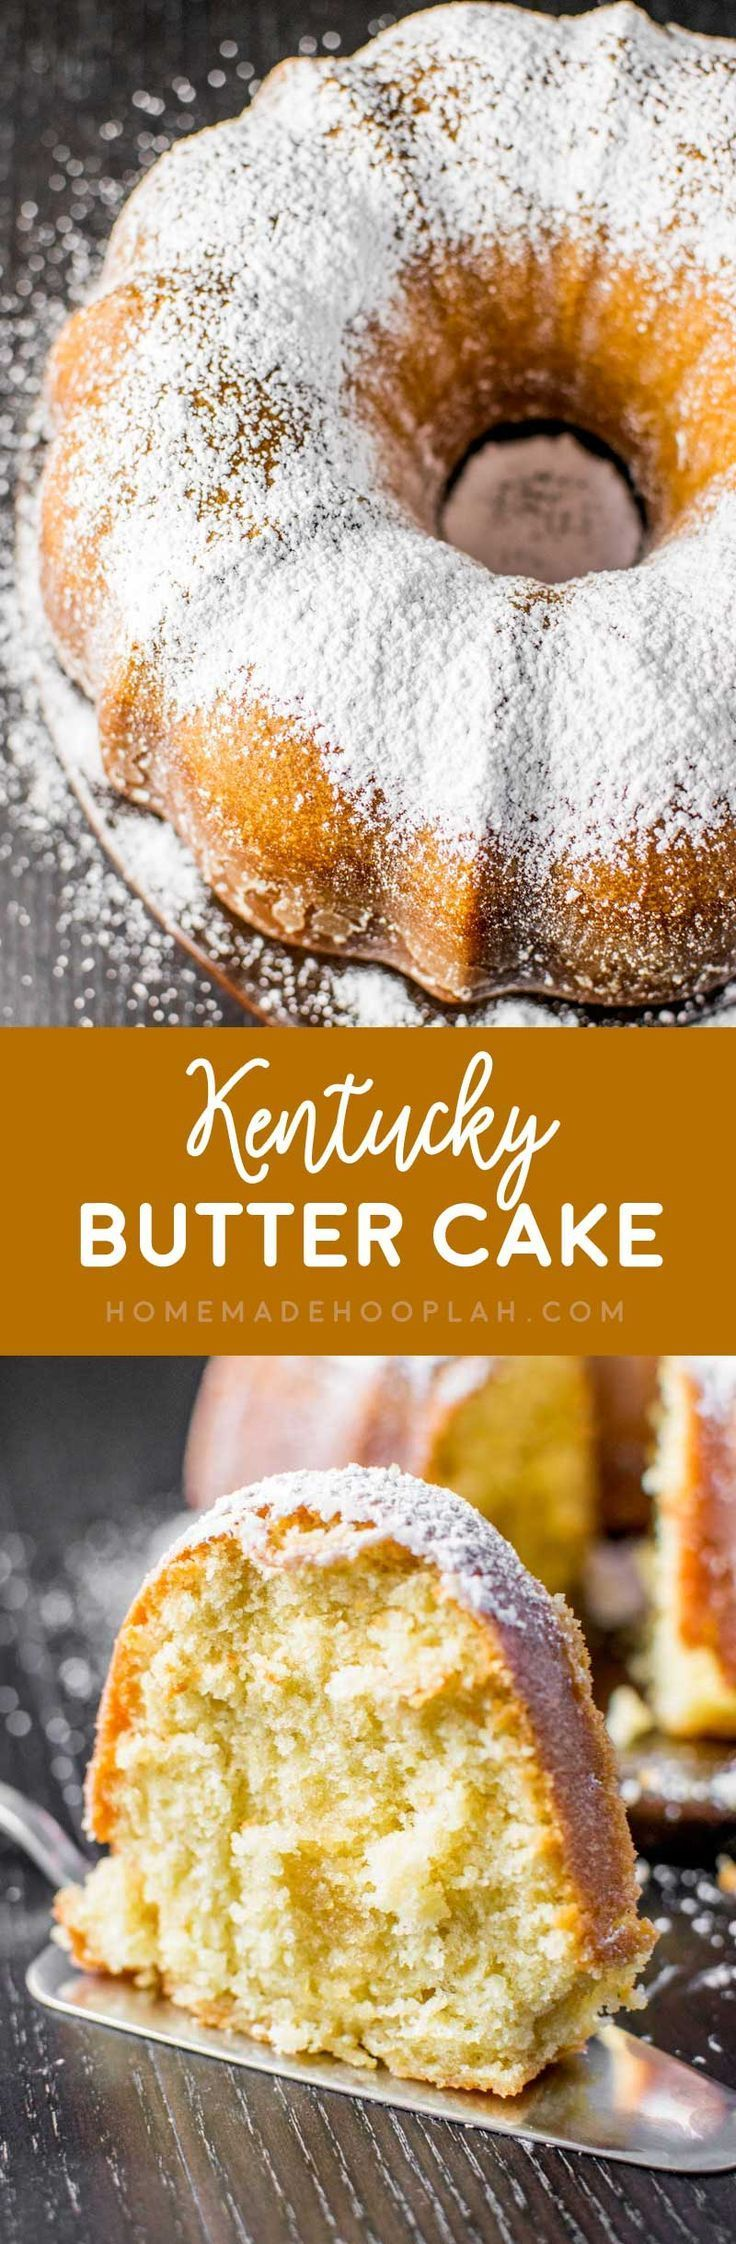 Kentucky Butter Cake! Extra moist and crumbly pound cake covered in a crispy sugar coating (with no alcohol in it, so it's family friendly!) Fair warning, this cake is addictive! | HomemadeHooplah.com